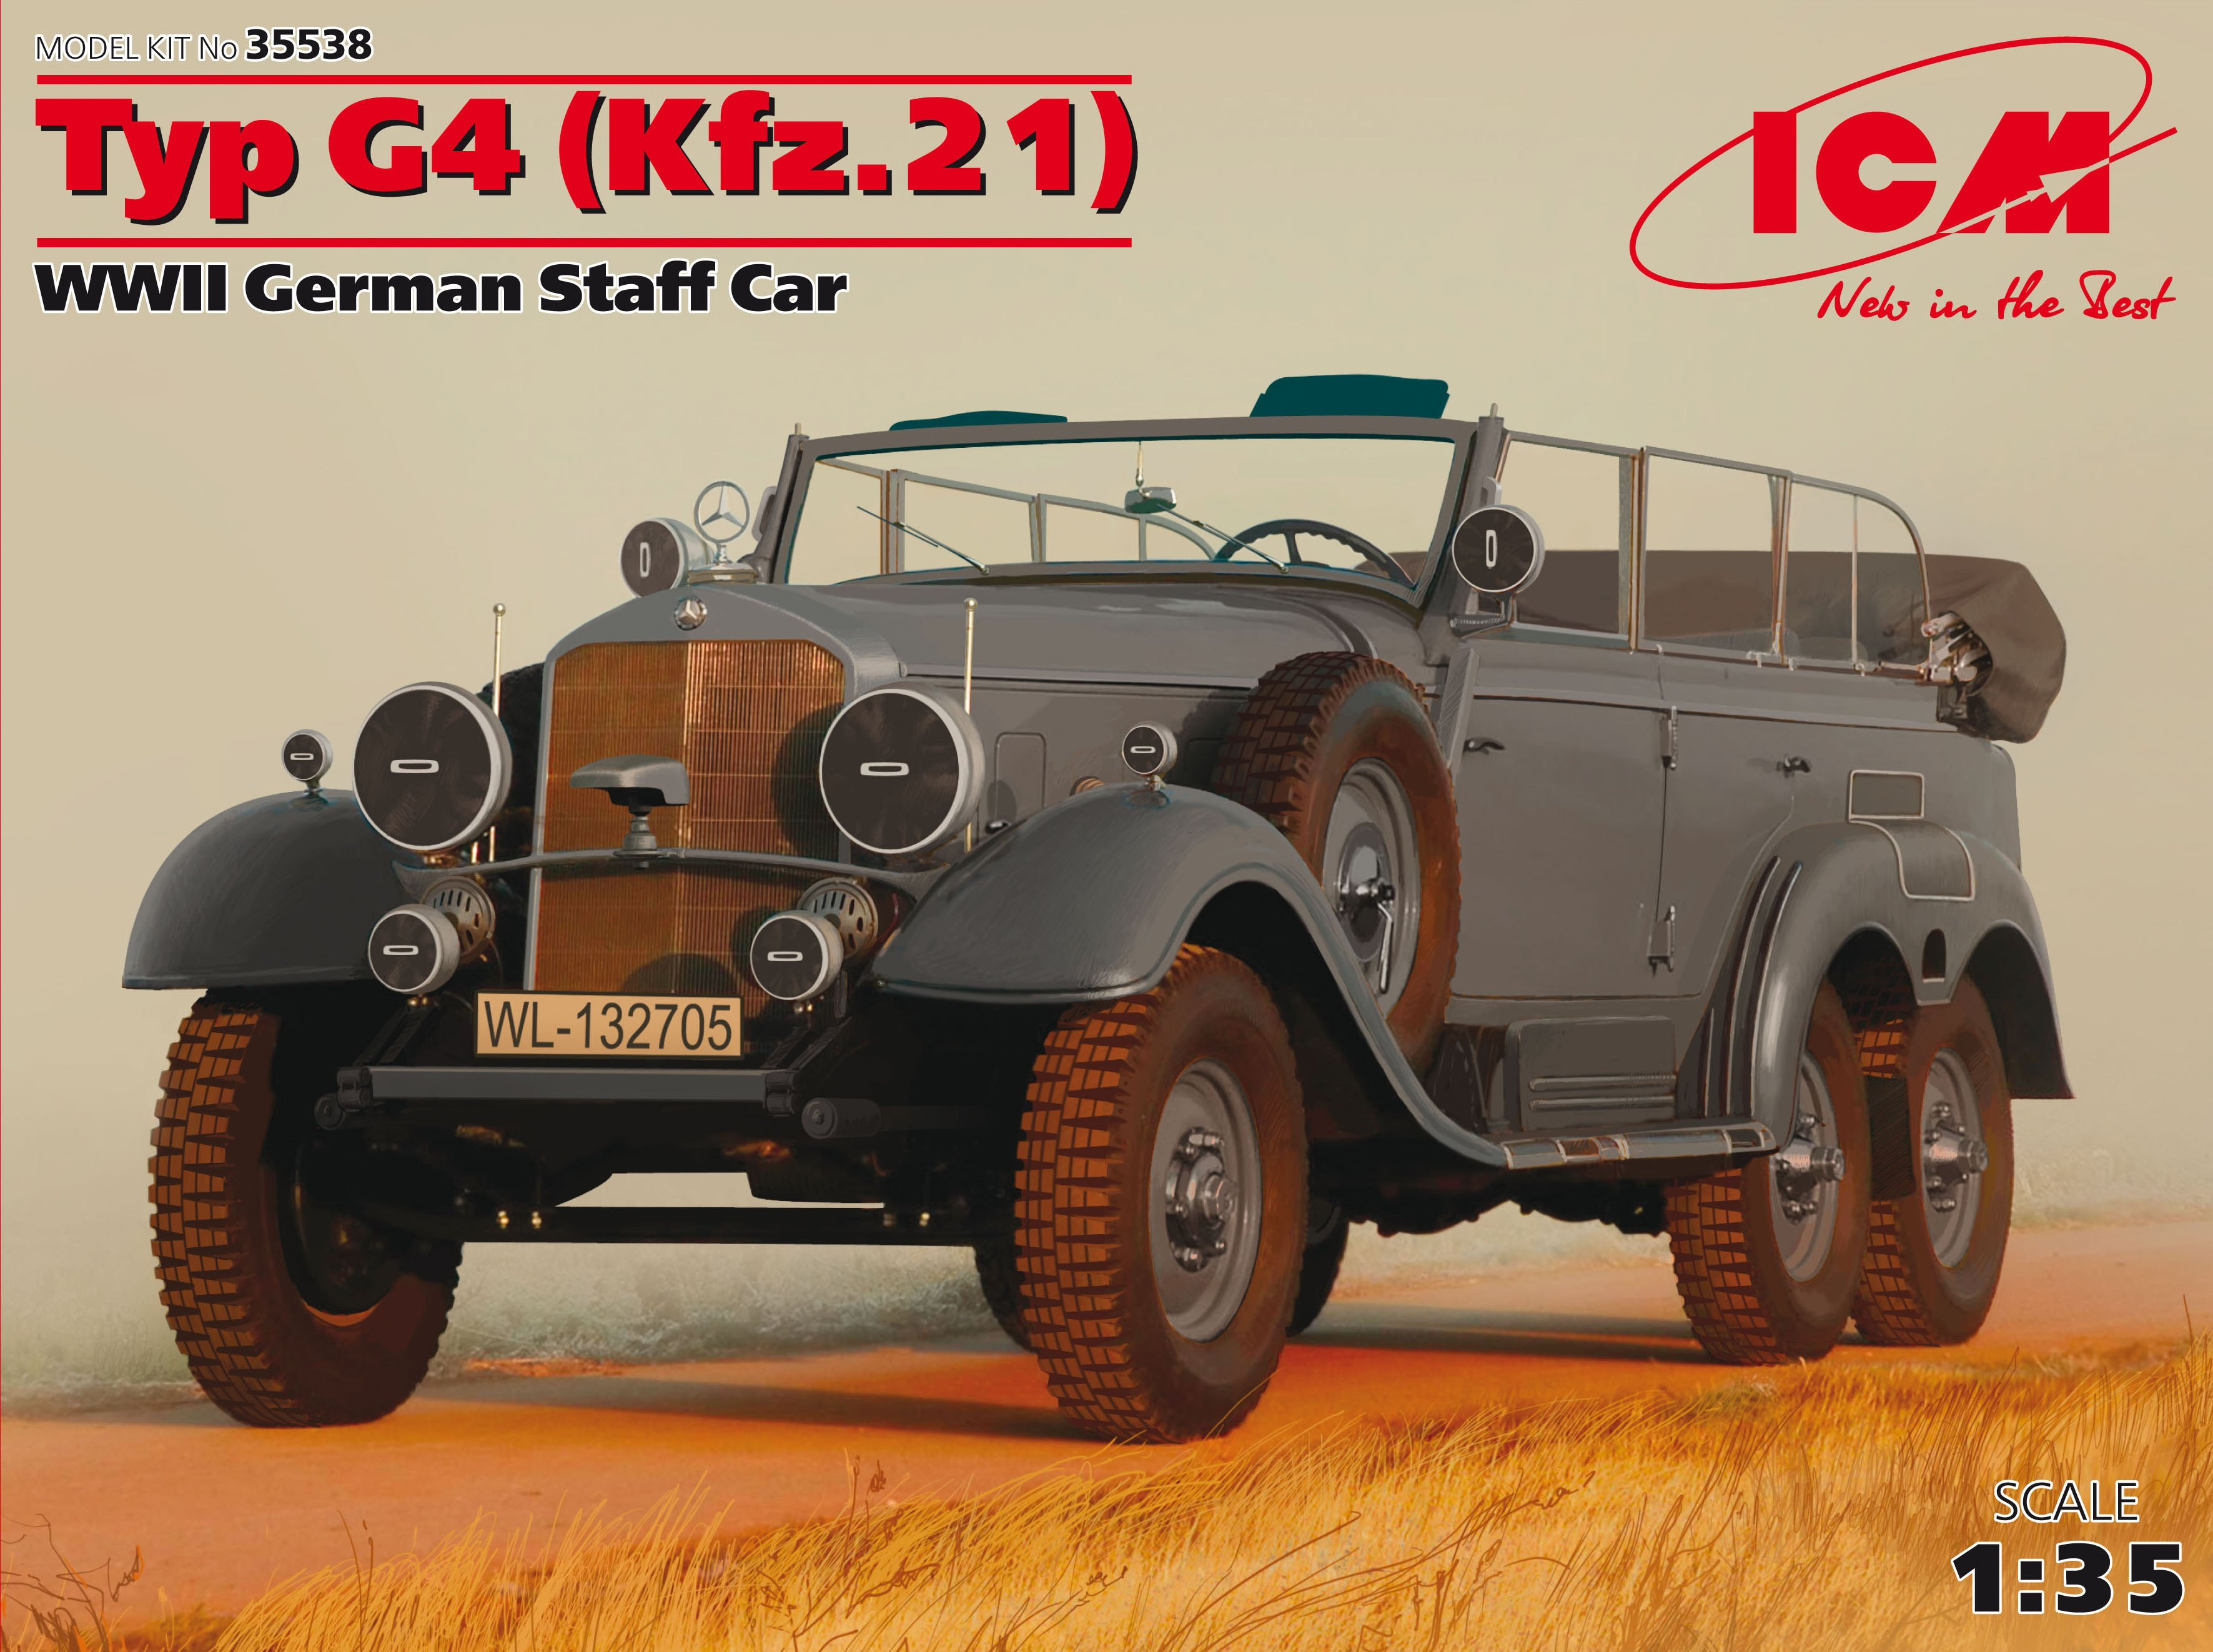 ICM Typ G4 (Kfz.21), WWII German Staff Car